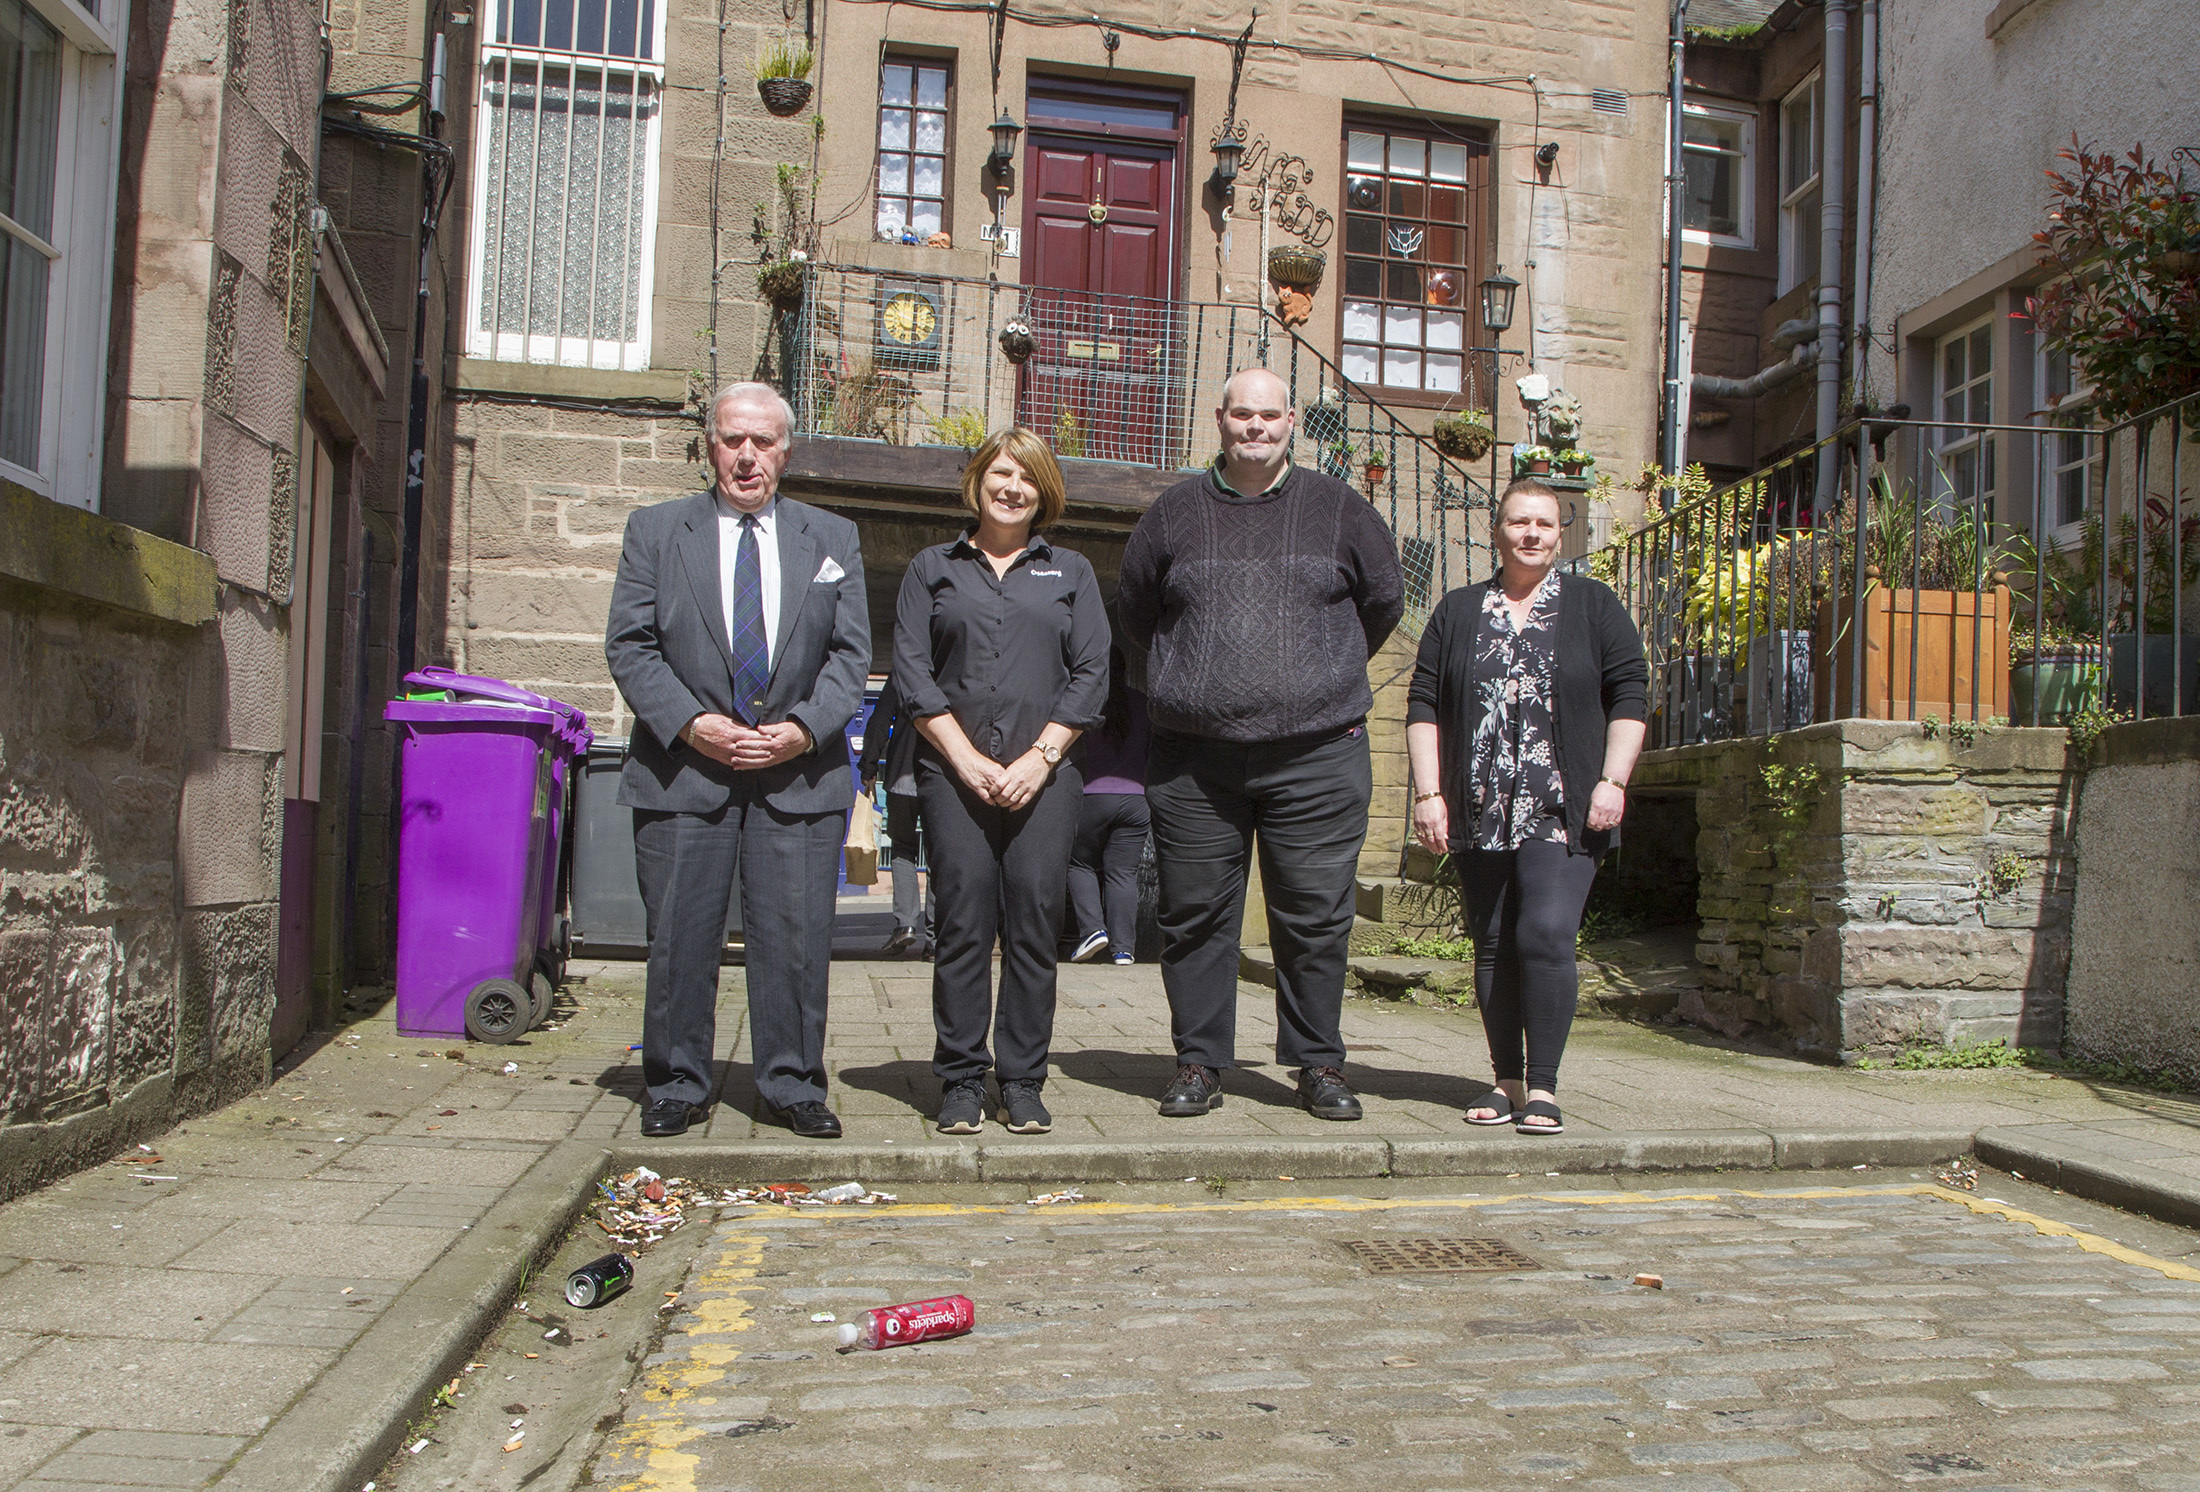 Pictured, left to right, are Councillor Colin Brown, Dawn McFarlane of the Osnaburg Bar, Neil MacKay of The Pend Emporium and Jacqui Robb of Auntie Jaquis